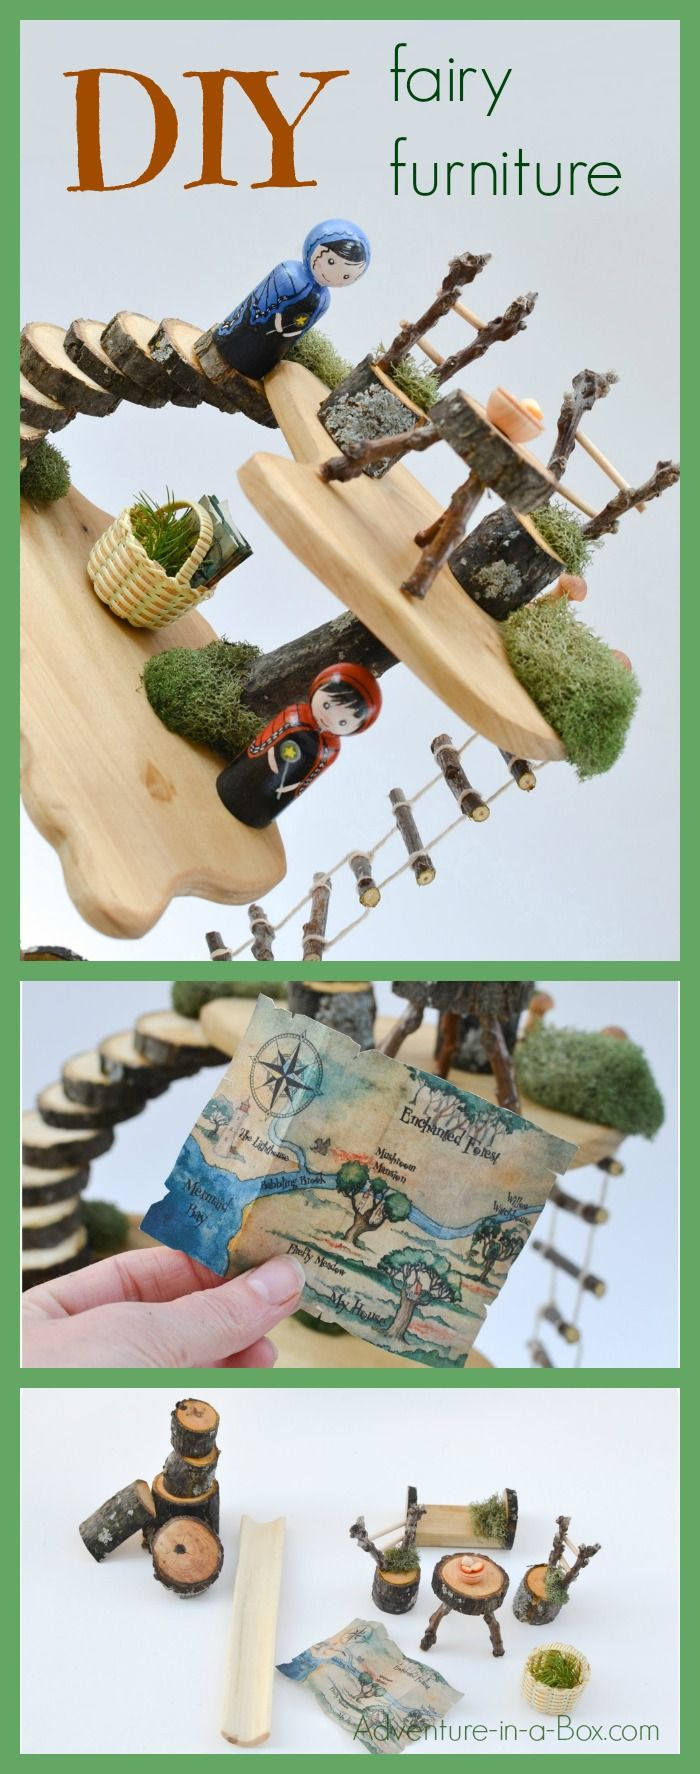 DIY Fairy Furniture: build homemade toyhouse furniture from natural materials. Pefect for Waldorf-inspired classrooms and playrooms!